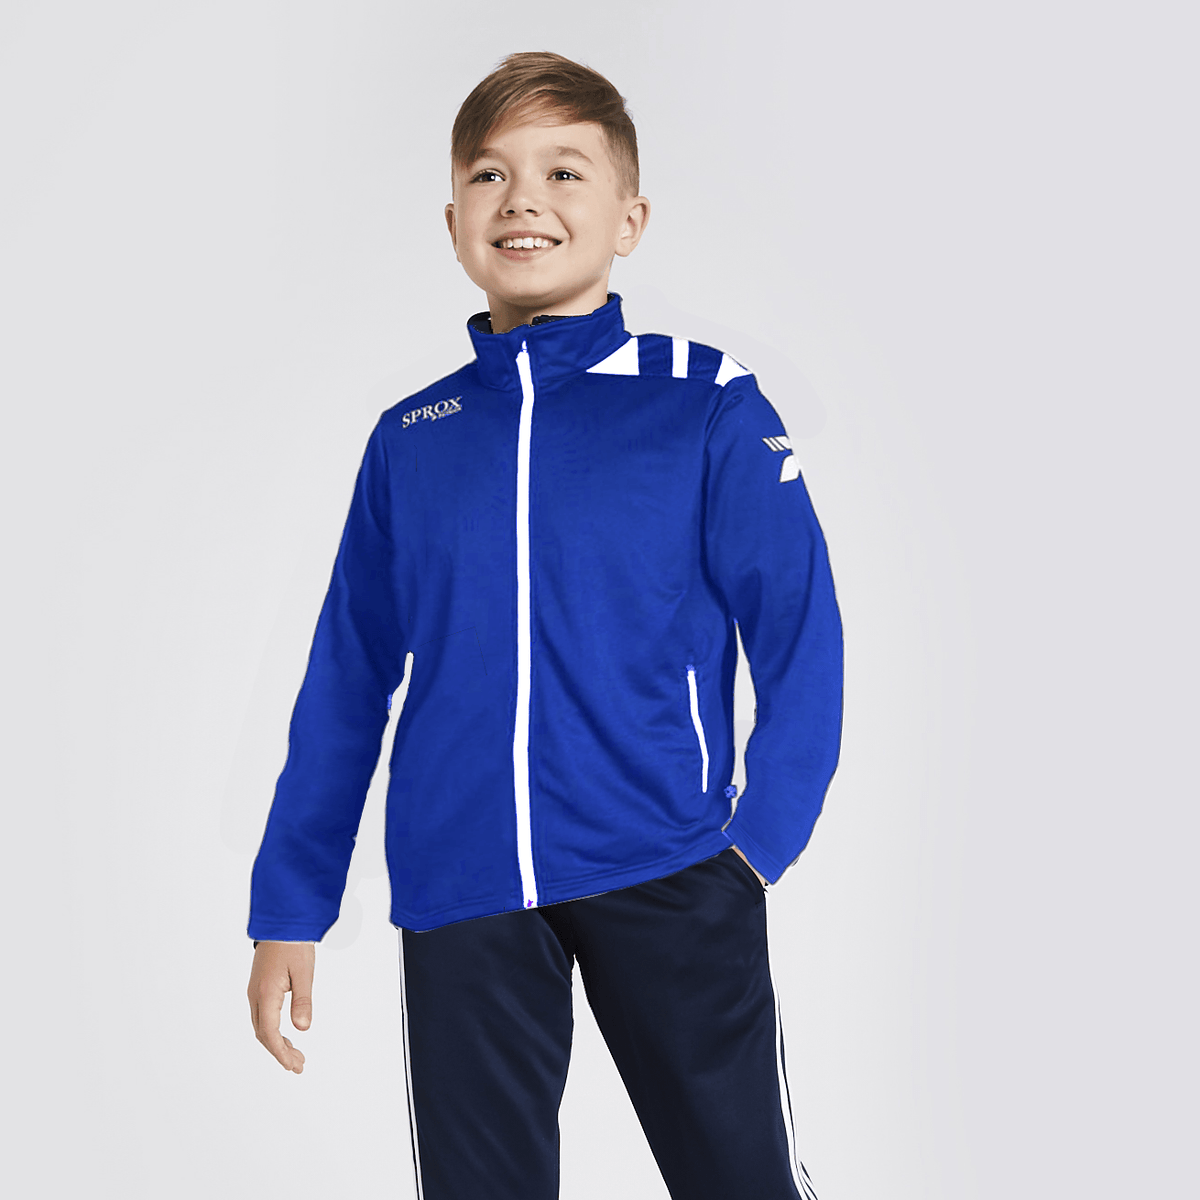 PTRK Boy's Full Zip Sportswears Poly Jacket Boy's Jacket SRK Royal White 4XS